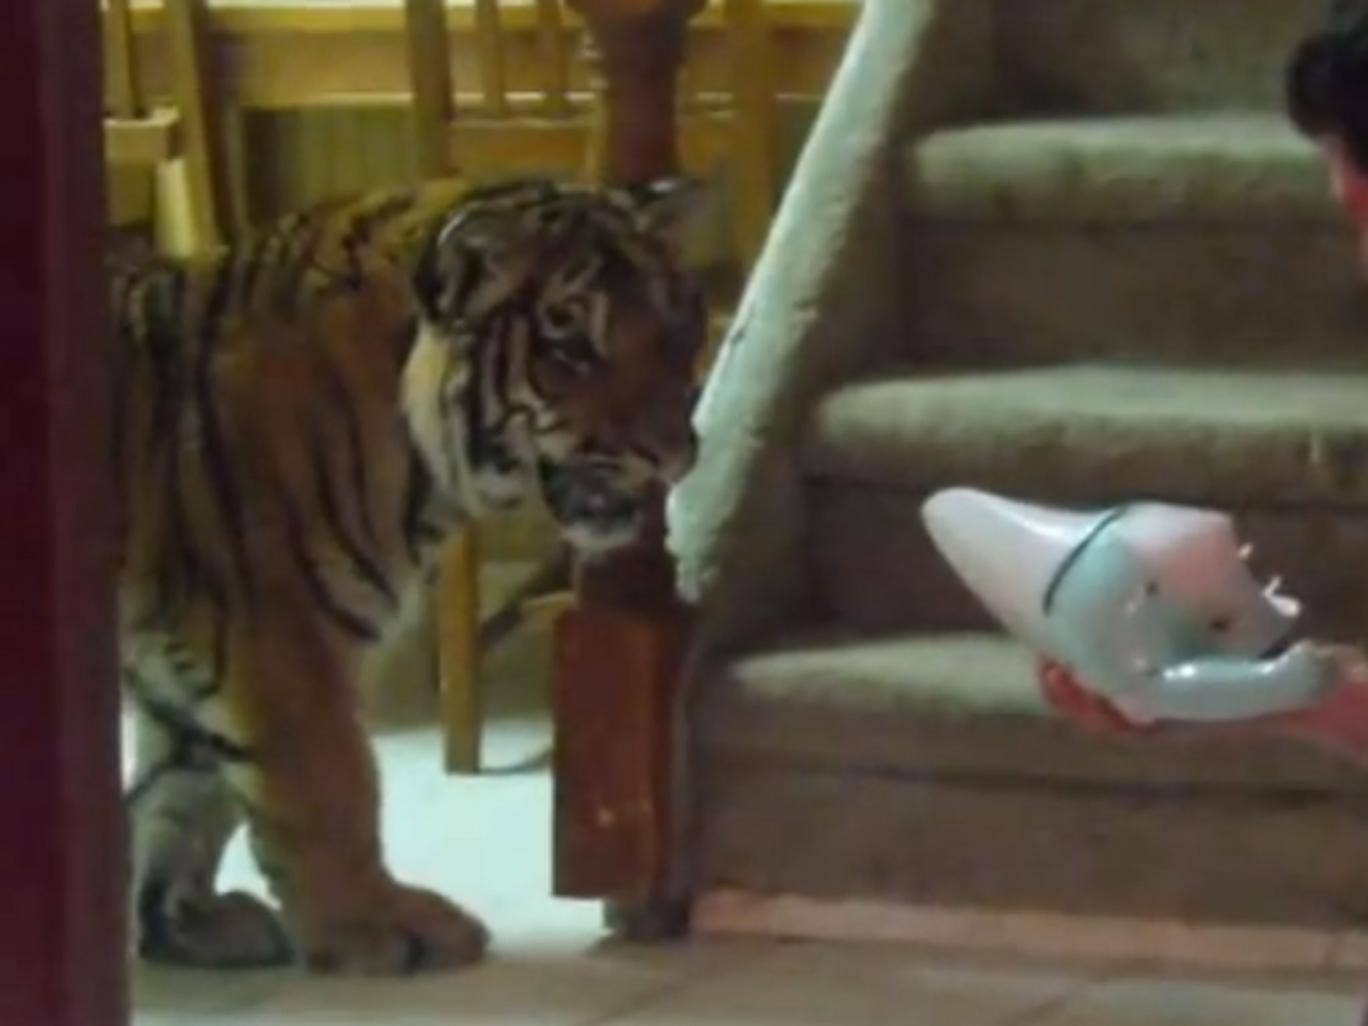 Home videos showed the extraordinary upbringing of Jonas the tiger - in this case facing up to a particularly scary dustbuster